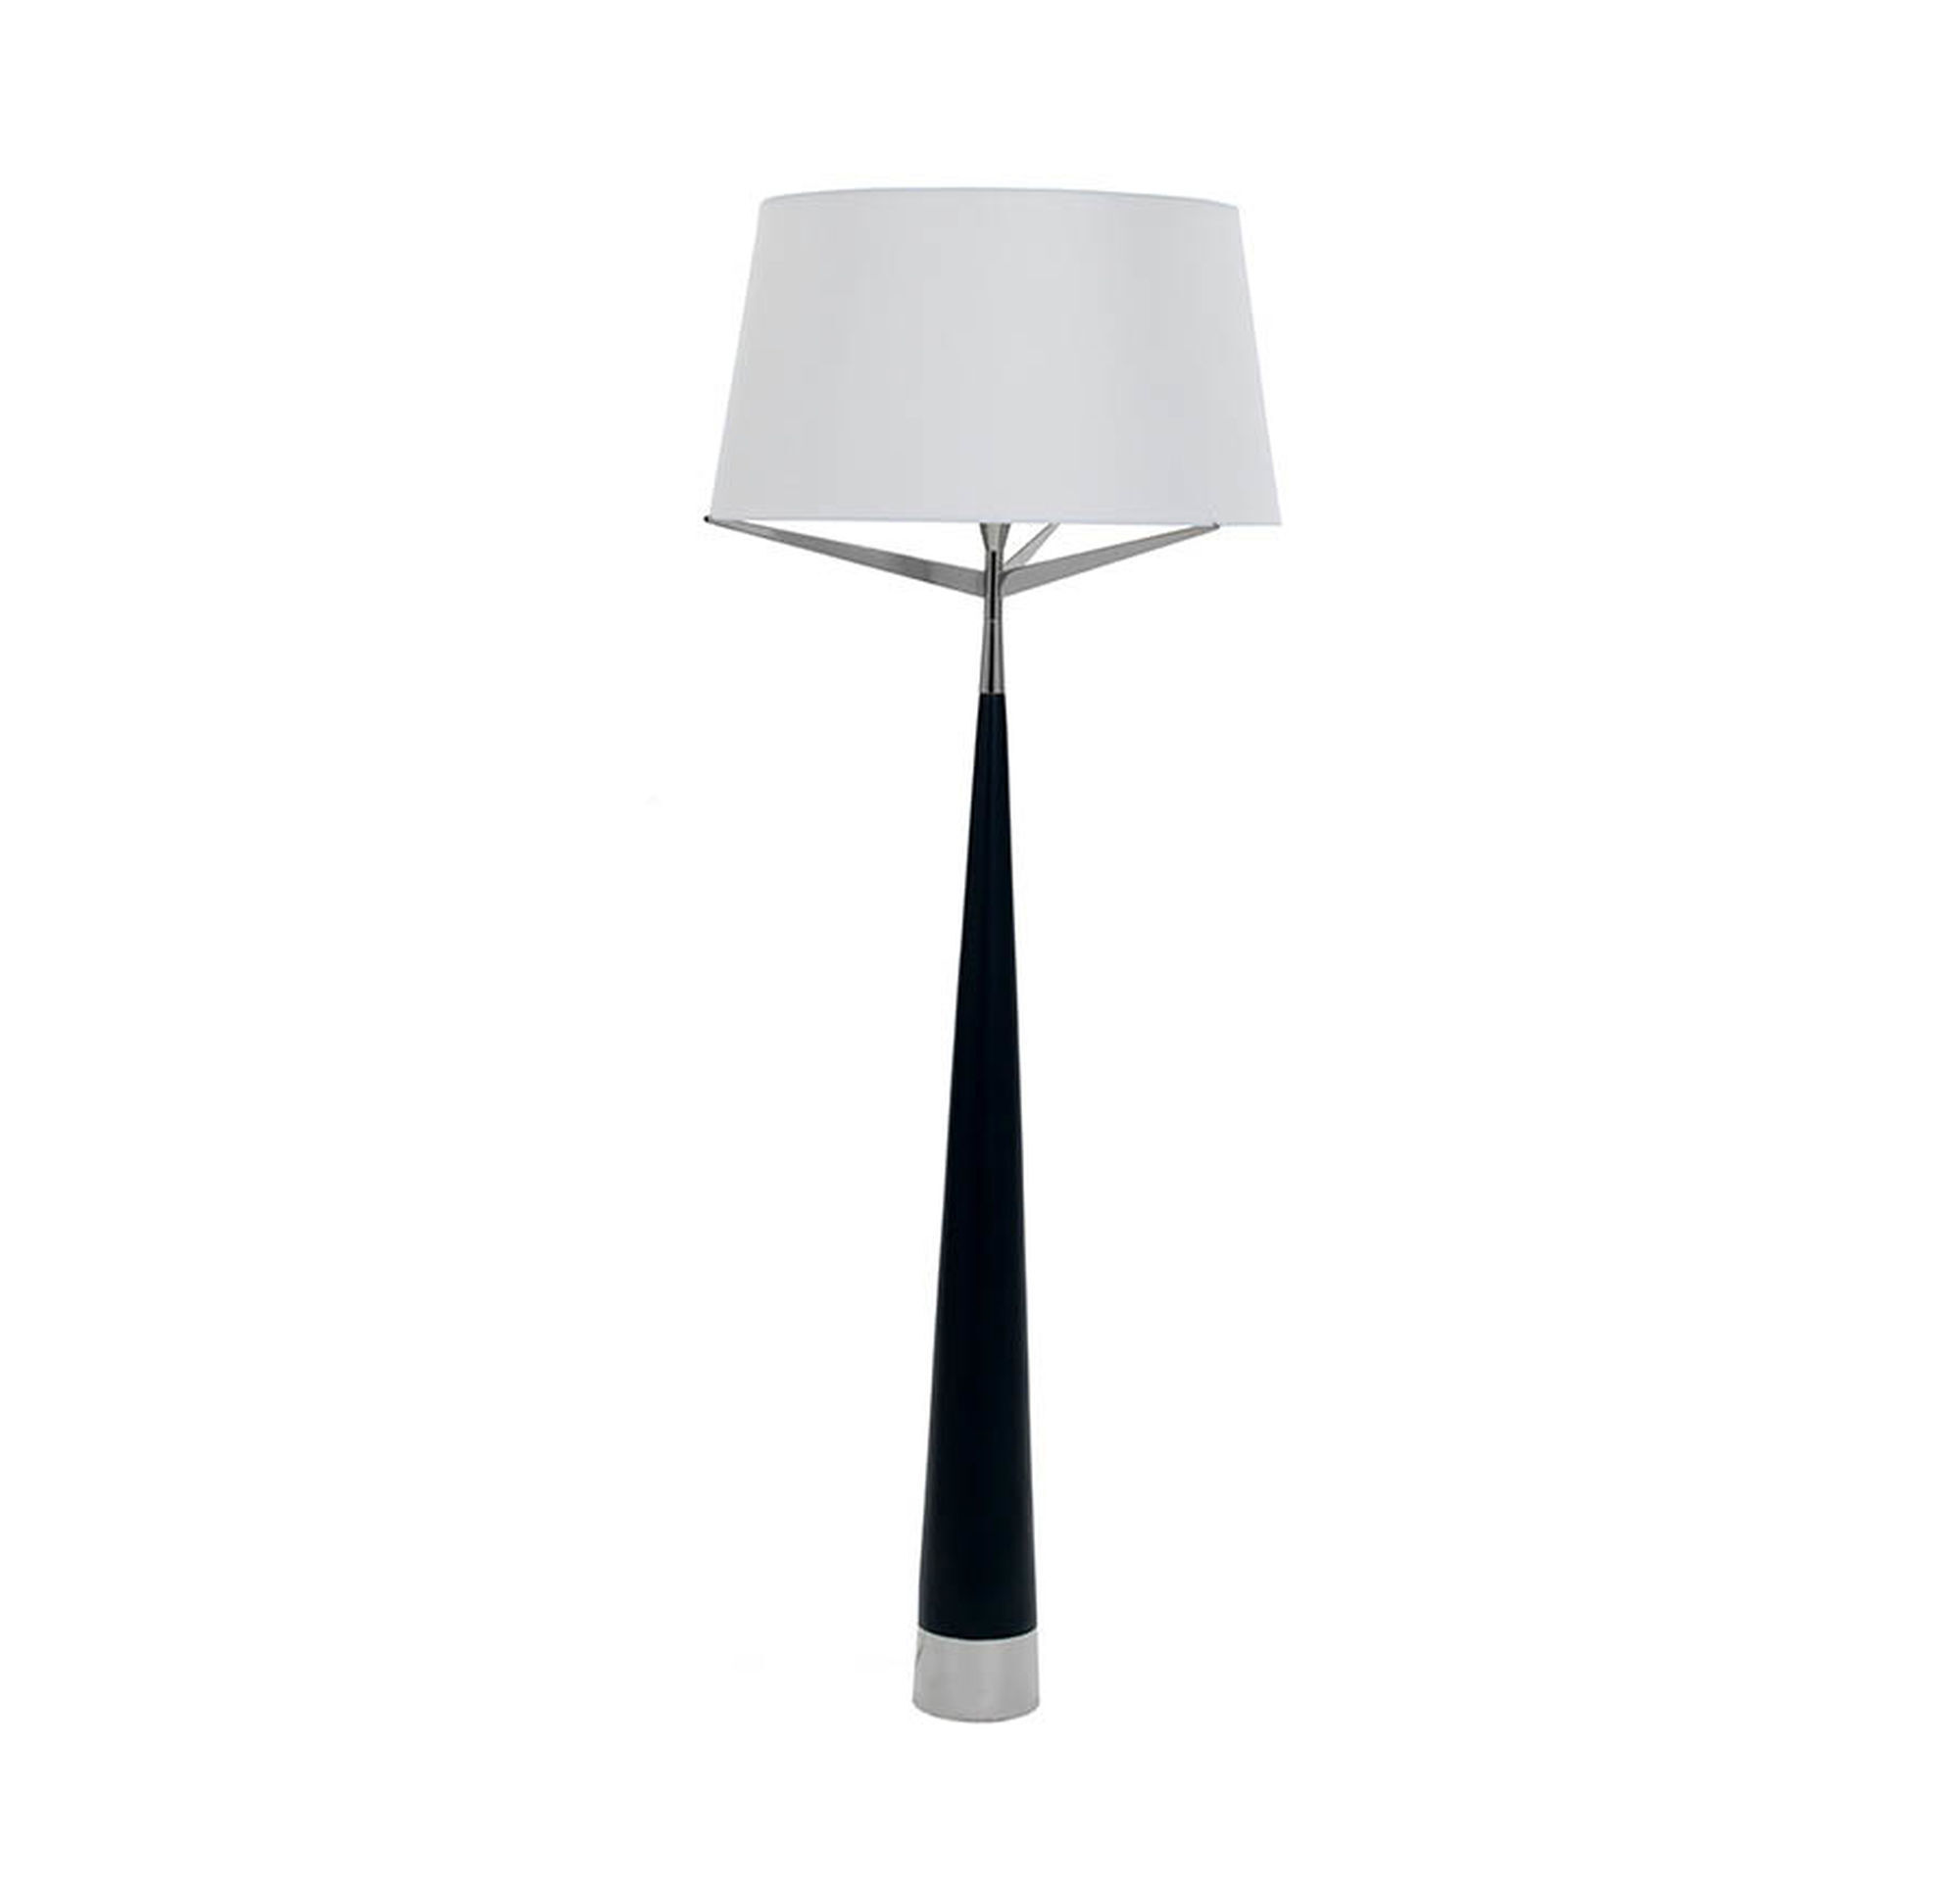 canada an style table candle crystal is glass silver online ceramic tiffany traditional world black full copper antique outdoor lamps adjustable chic shabby on optimal lights stick kitchen lamp floor torch saca accent including decision standard modern uk overarching size sale of brass